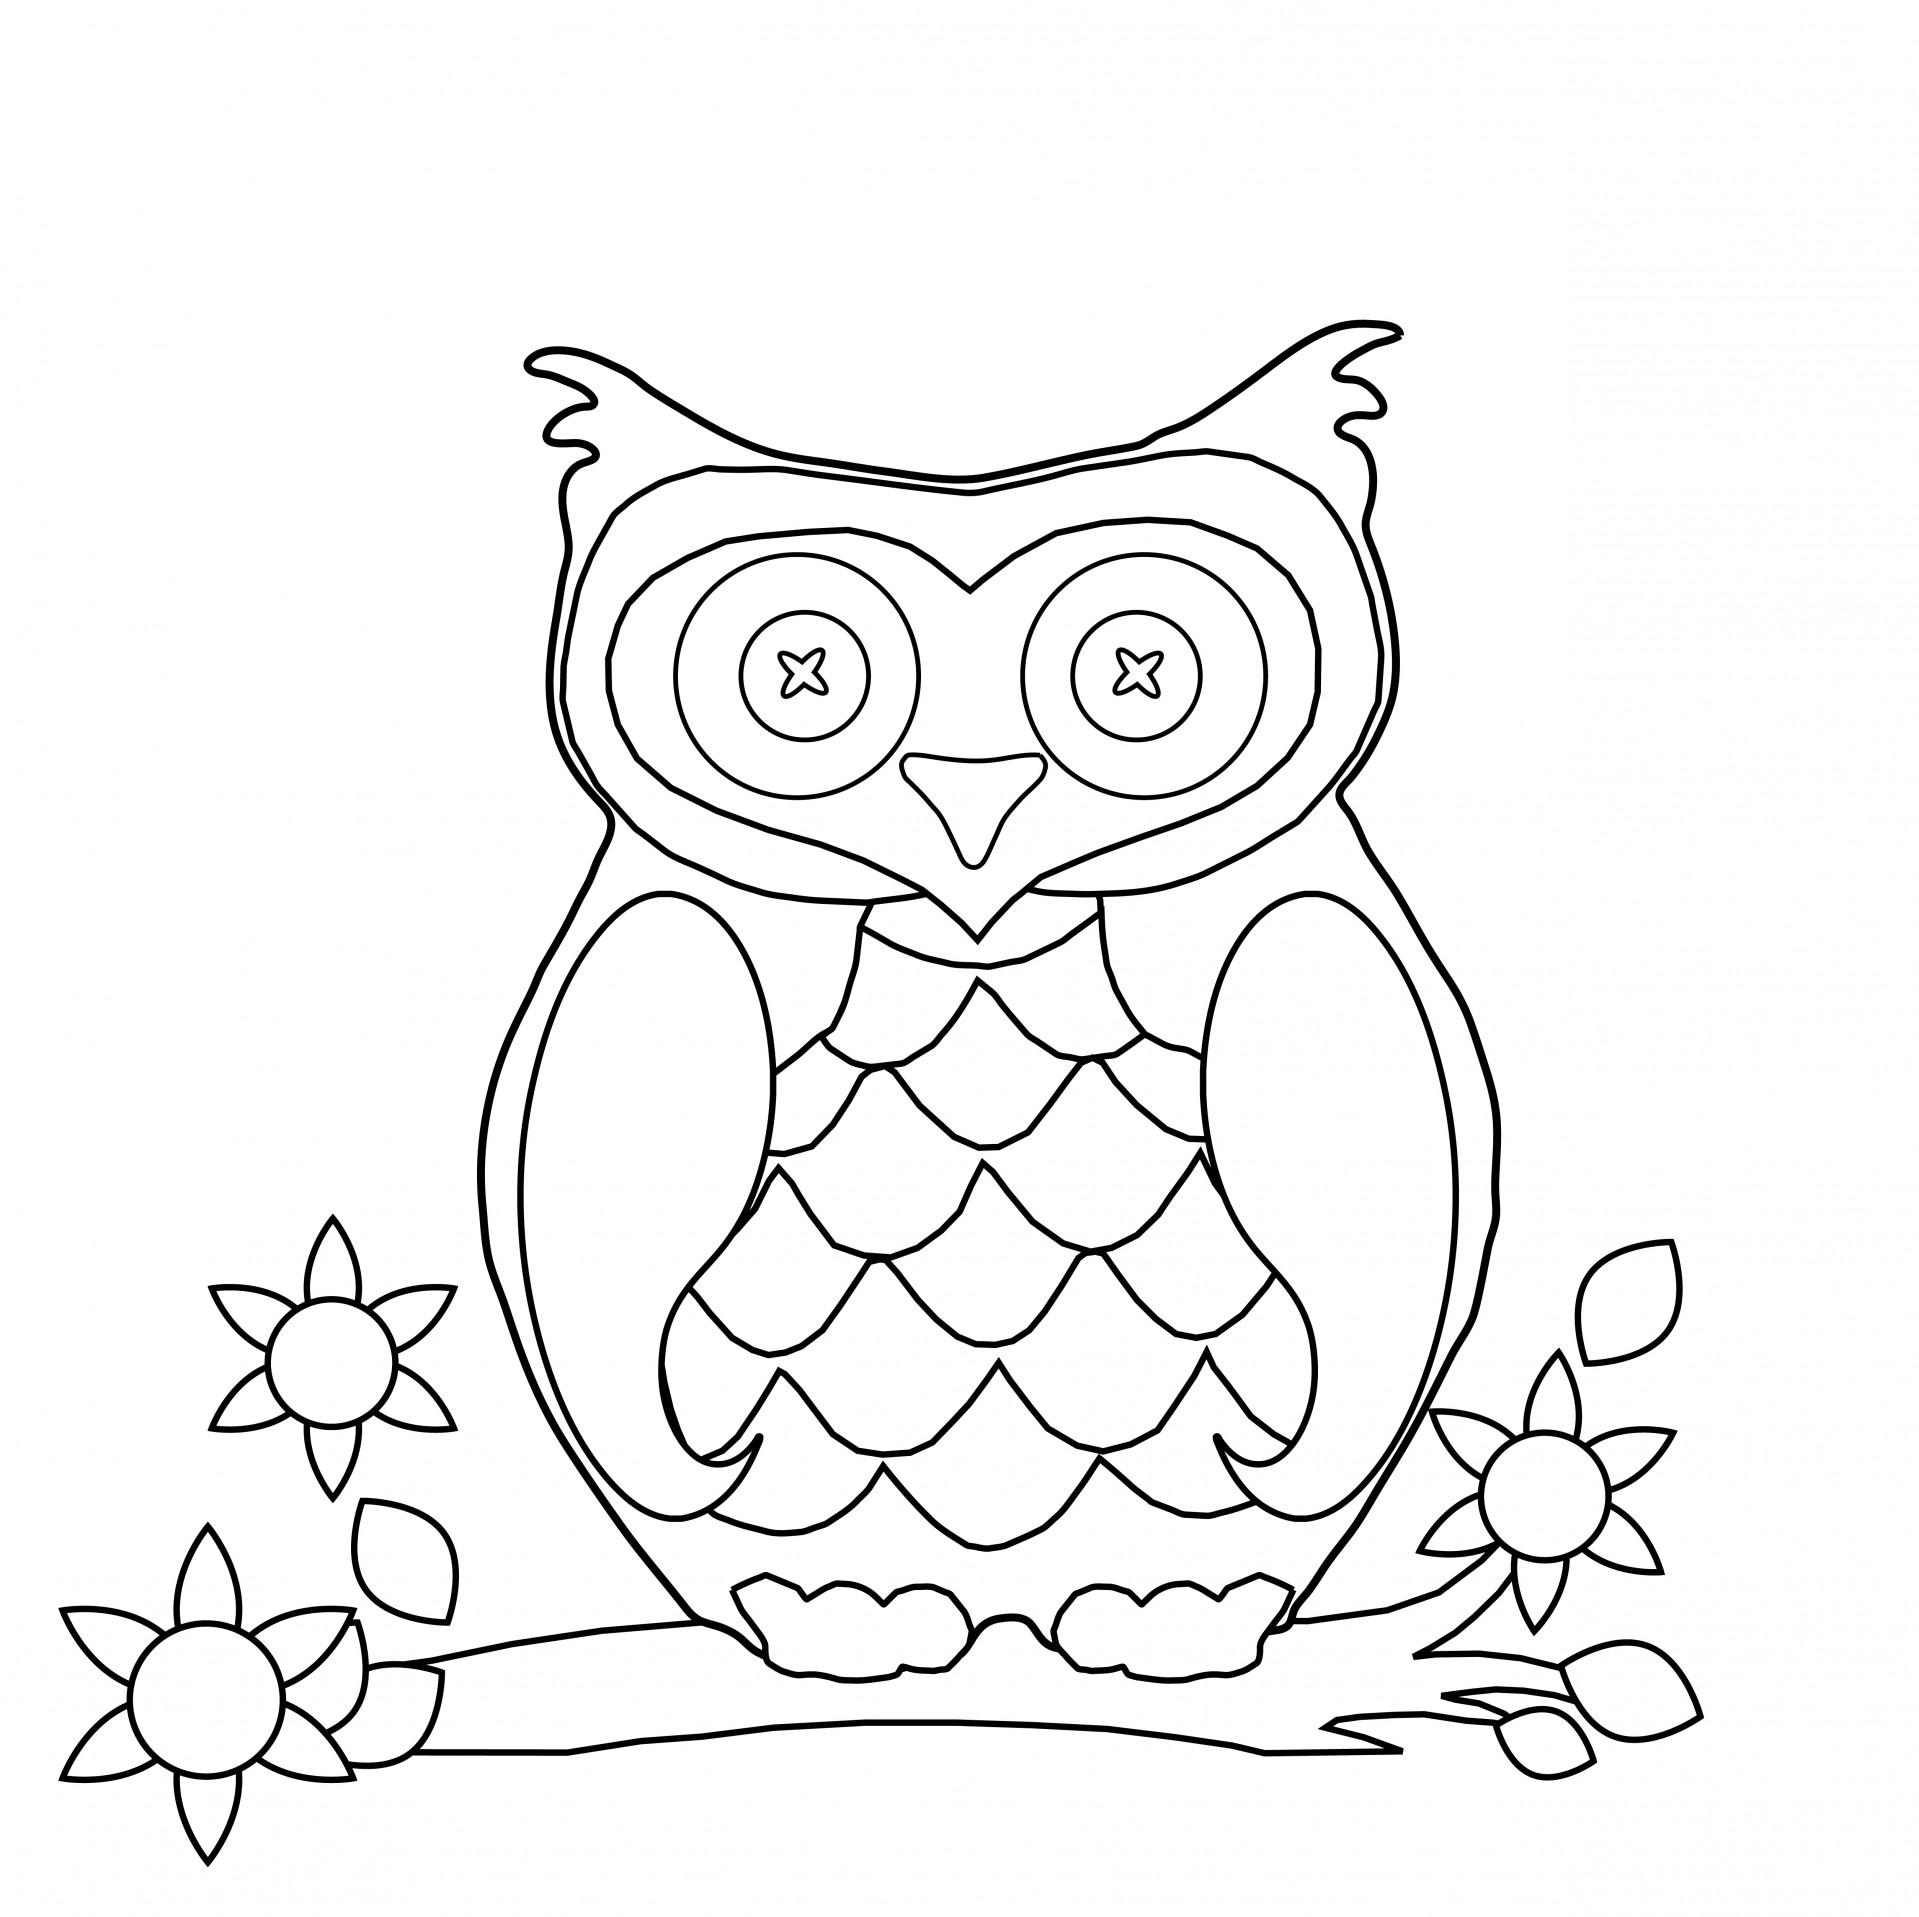 coloring sheet coloring pictures for kids free printable butterfly coloring pages for kids coloring pictures coloring kids sheet for